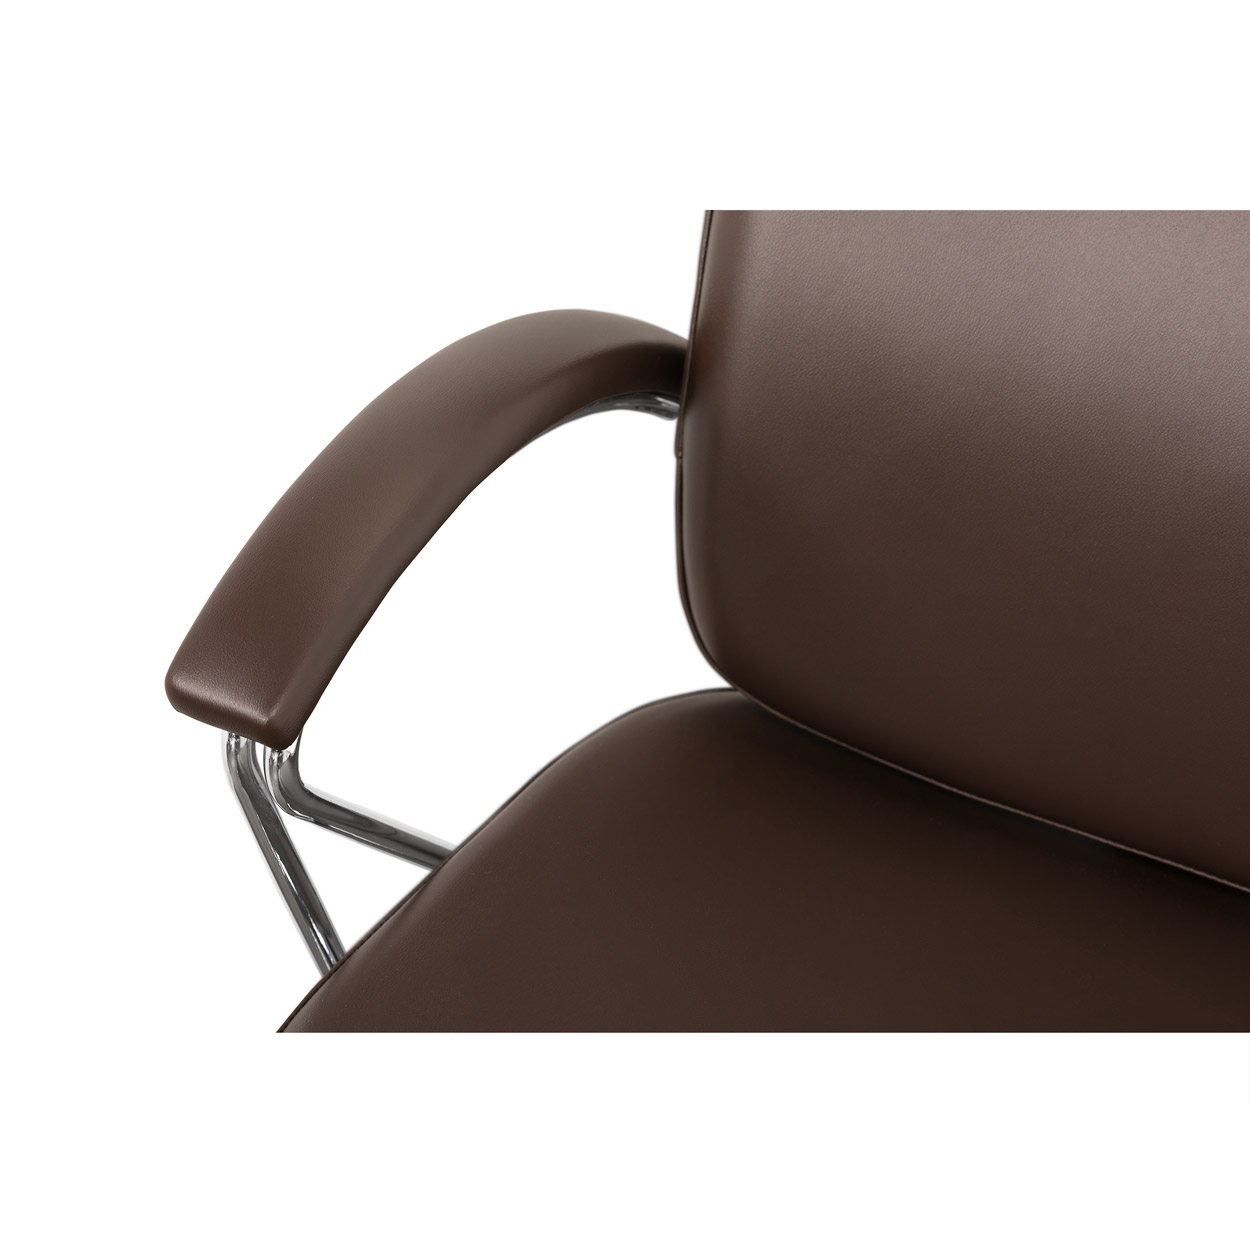 Pibbs 5906 Samantha Hair Salon Chair with Padded Arms alternative product image 3